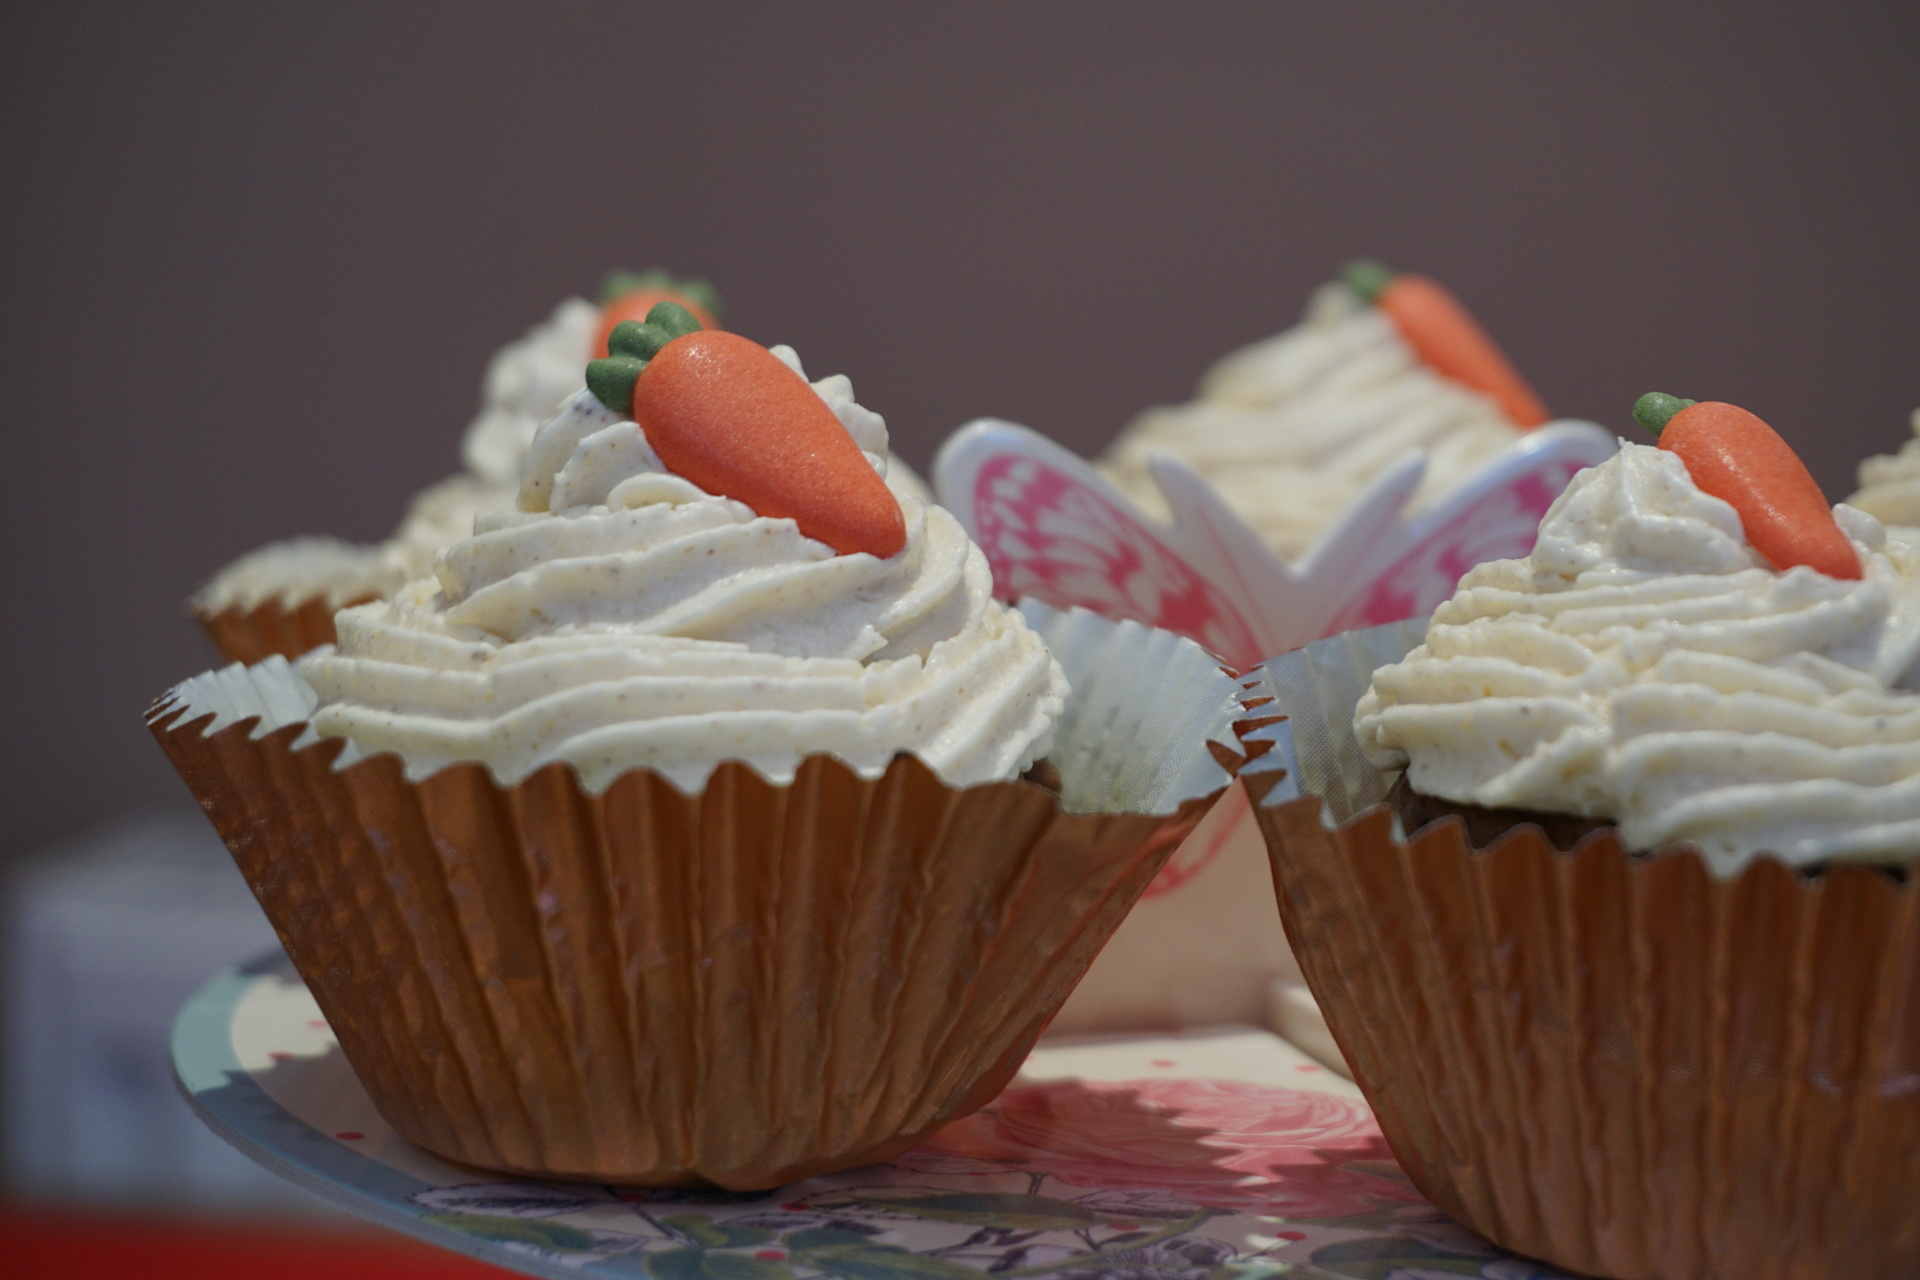 Carrot & Lemon Buttercream Cupcakes!